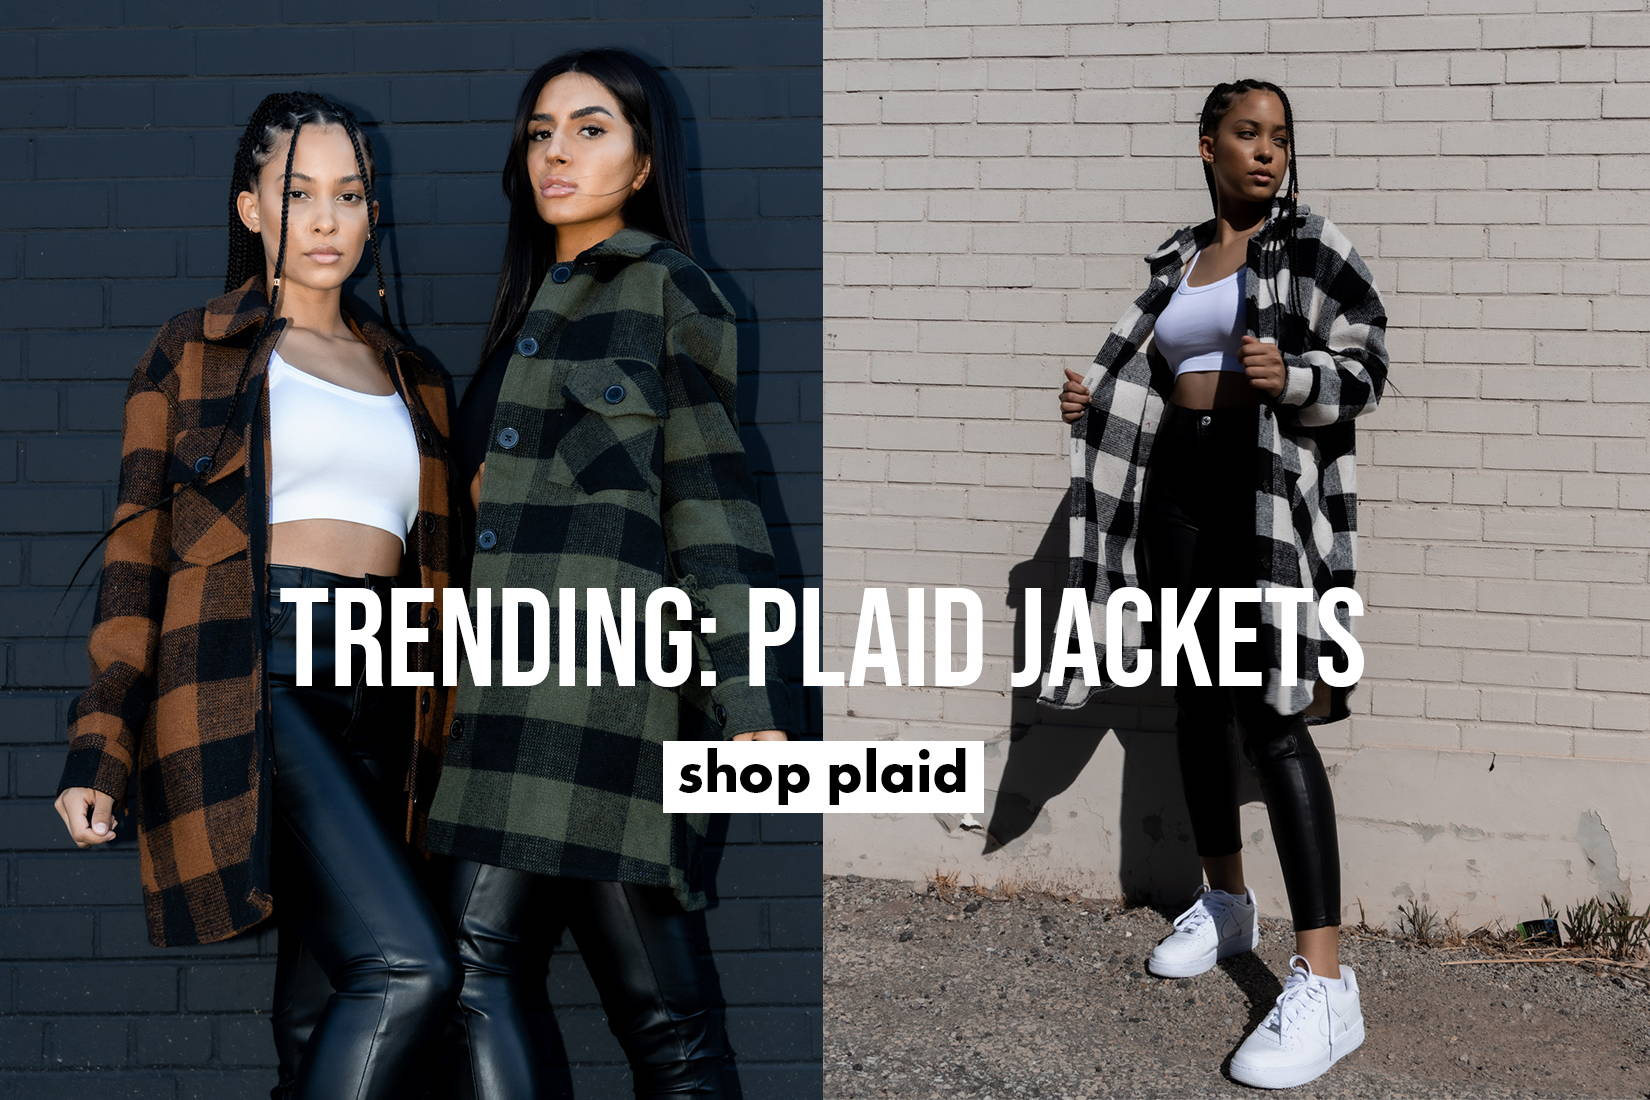 Shop Plaid Jackets